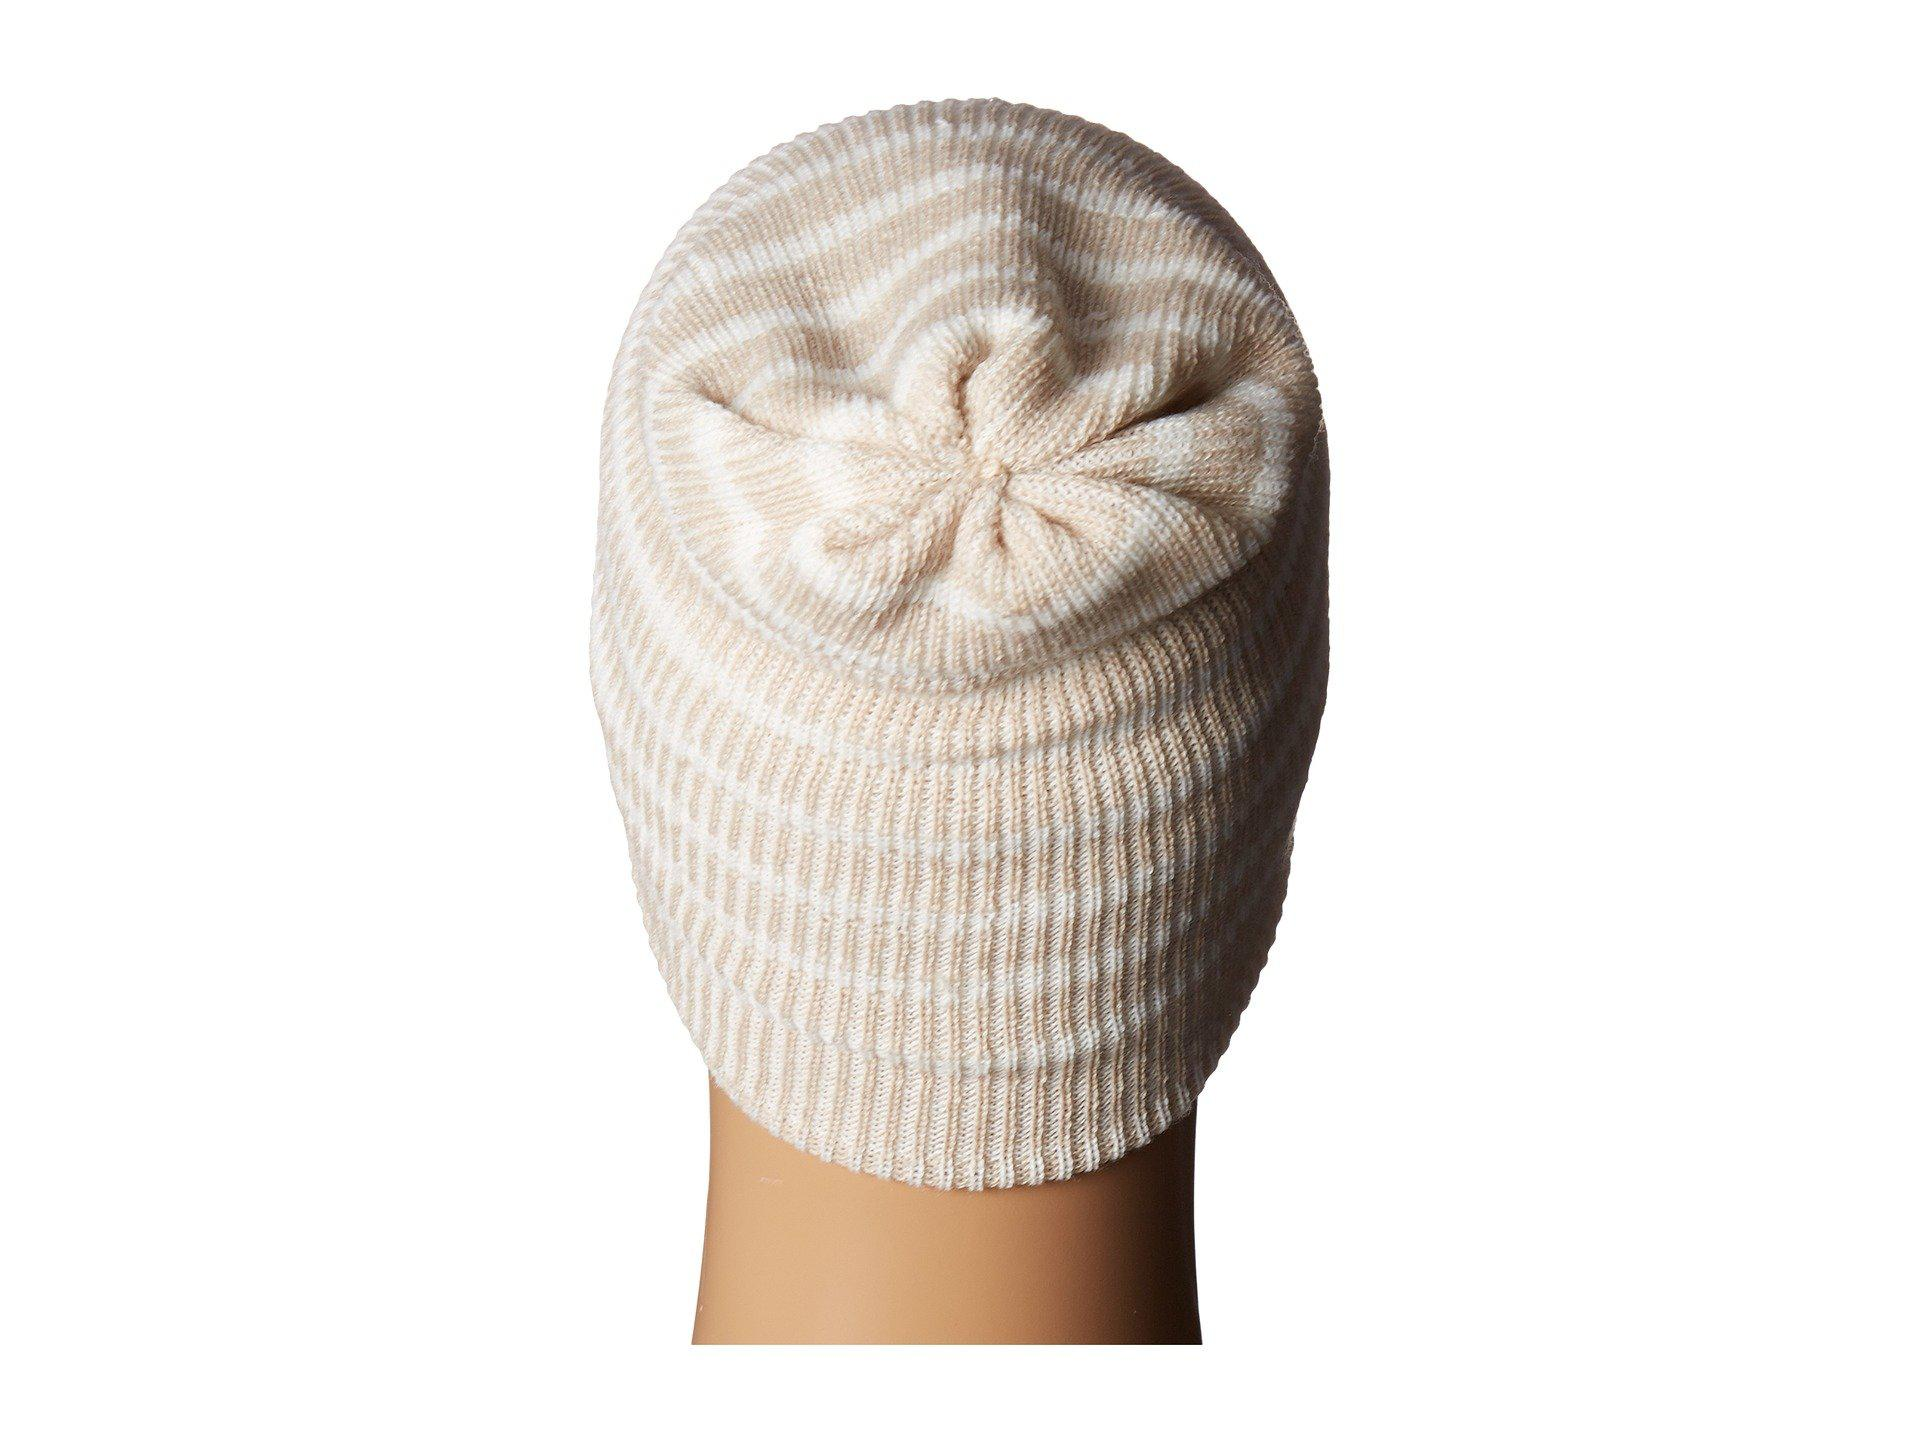 Lyst - Smartwool Reversible Slouch Beanie in Natural e8f1f04e5b88